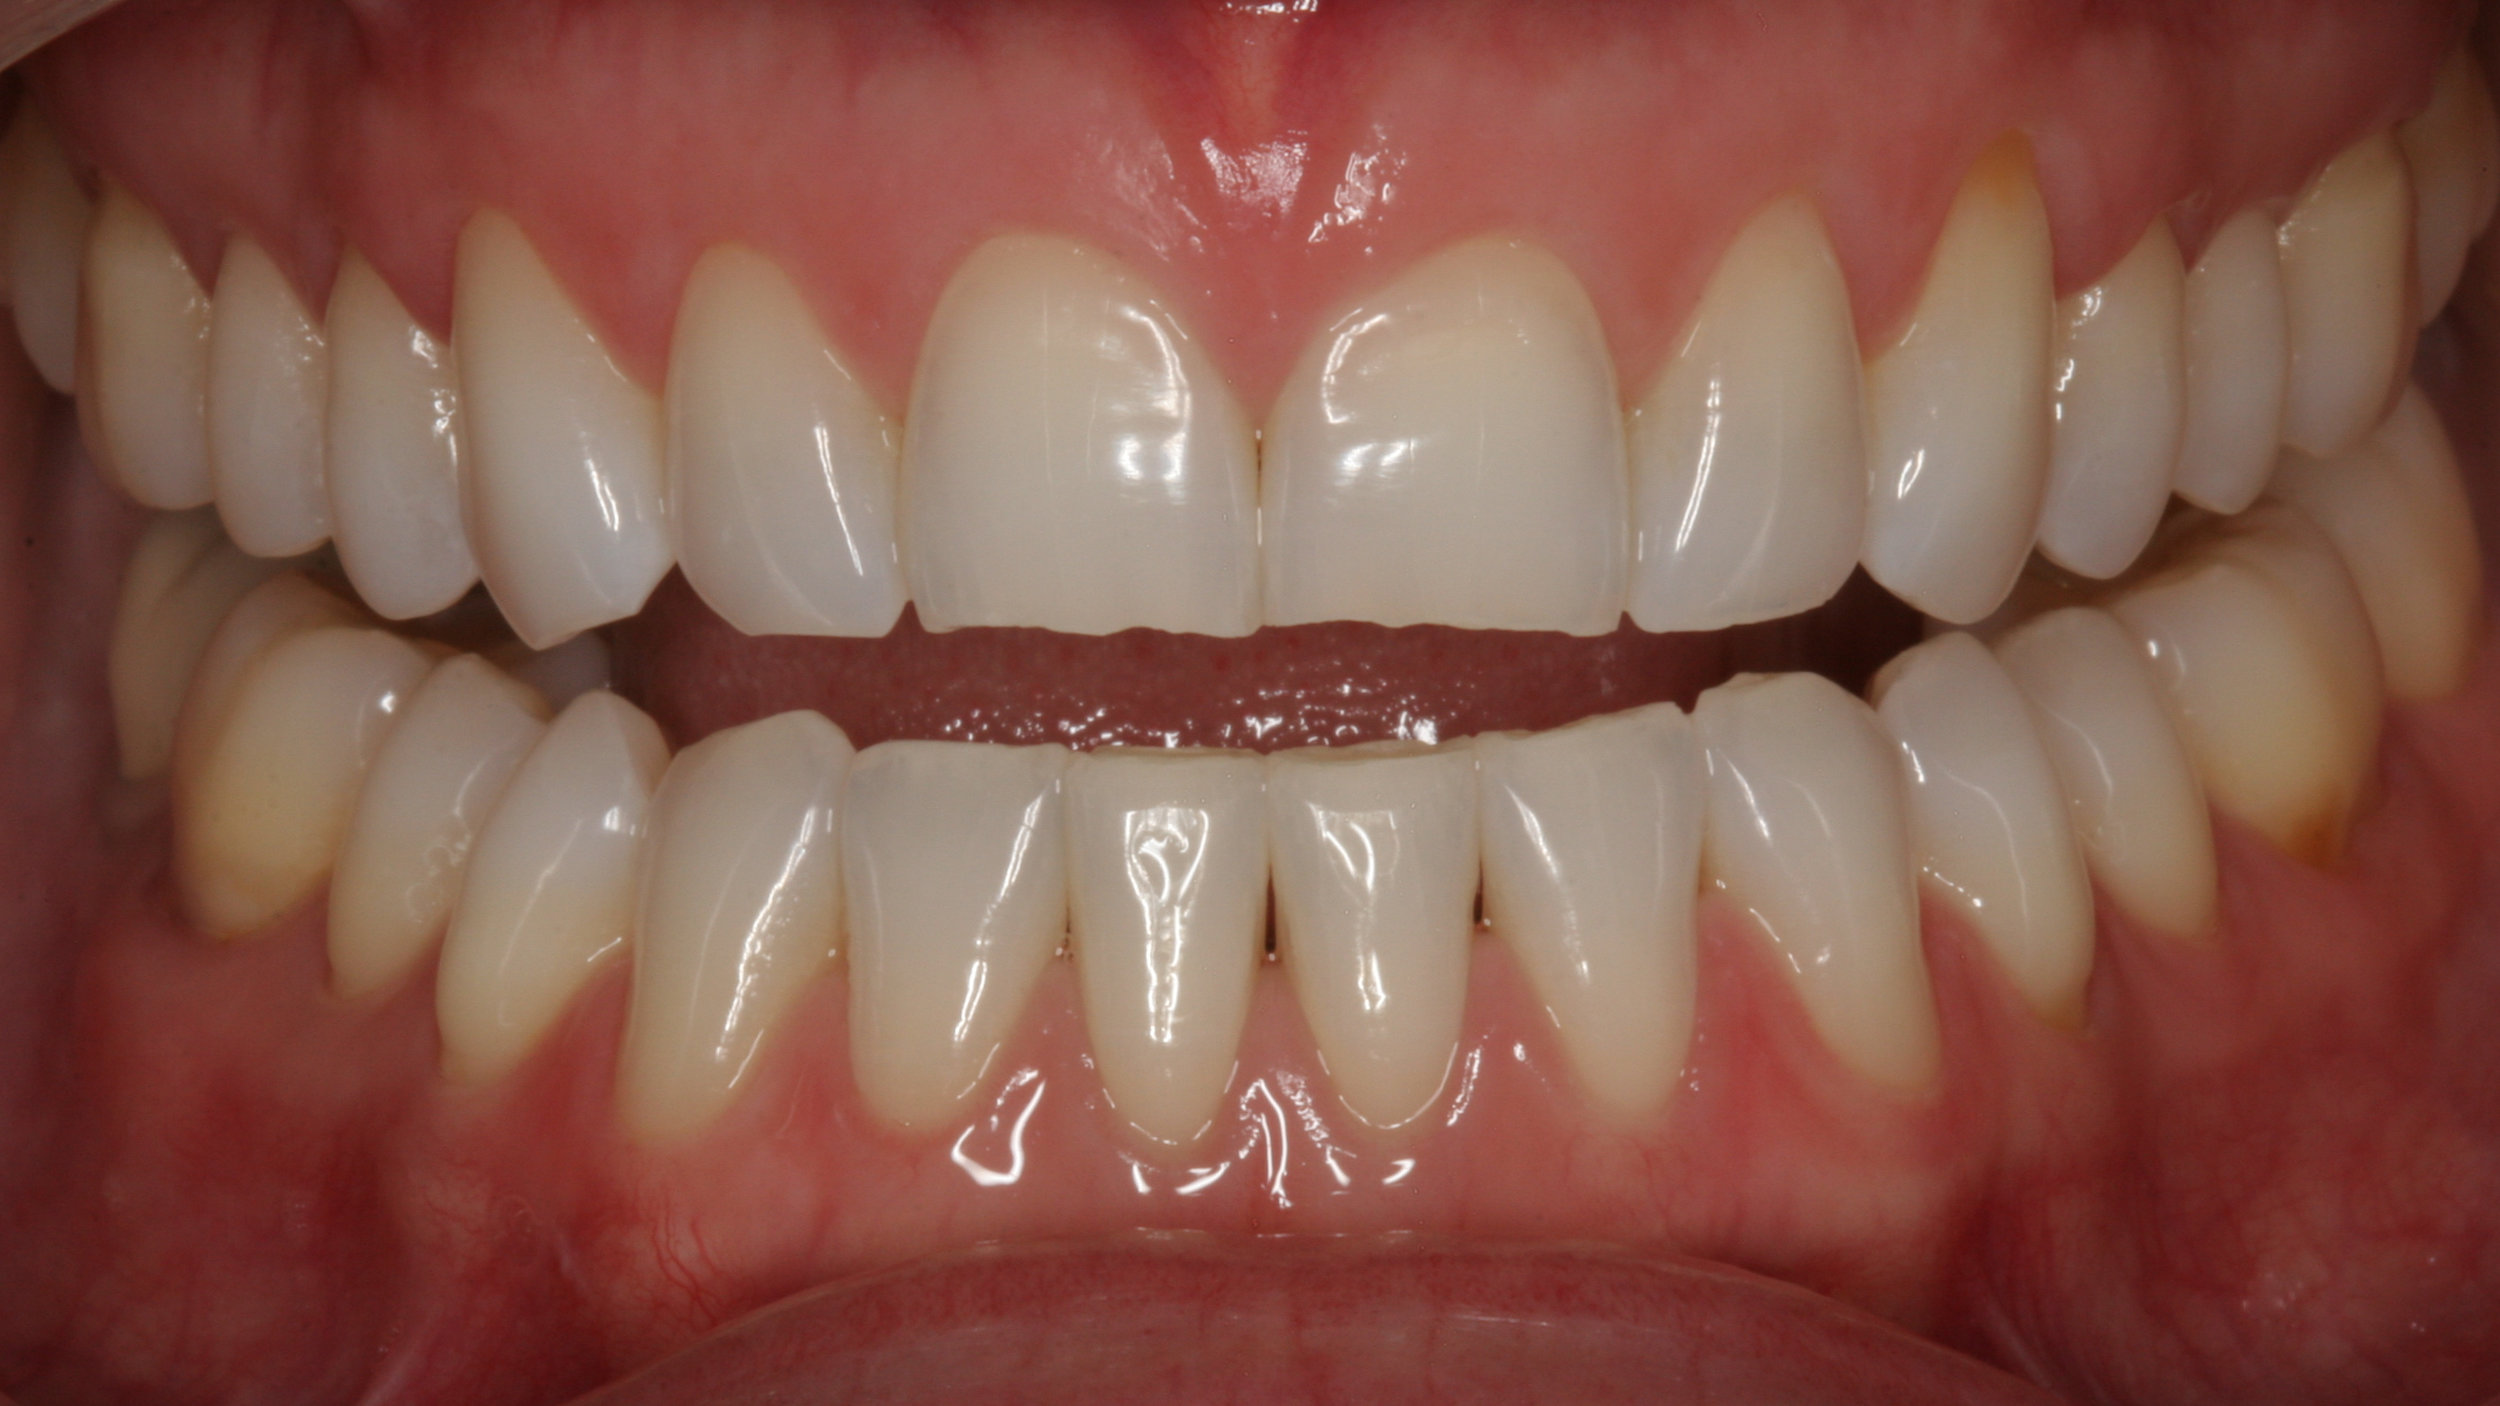 Worn teeth before dental restorations